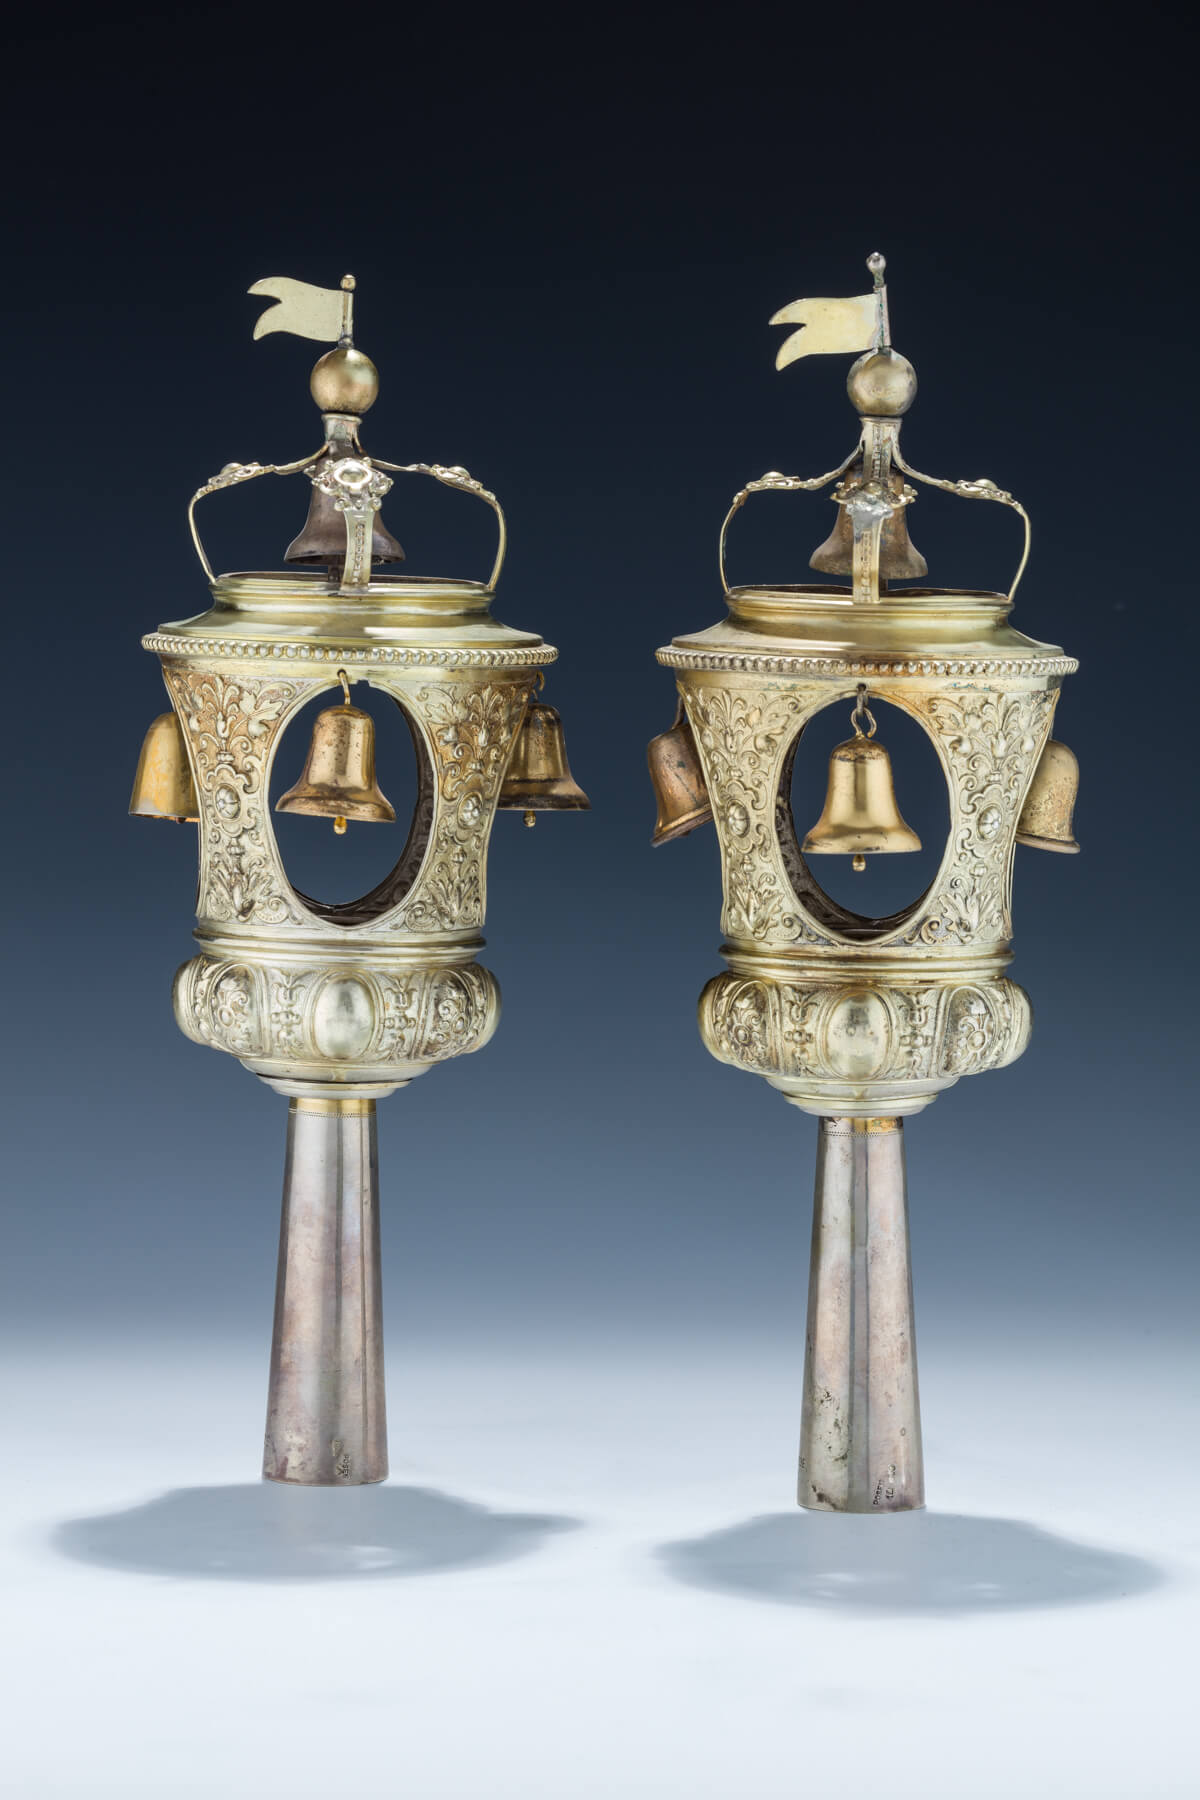 89. A Pair of Gilded Silver Torah Finials by Lazarus Posen